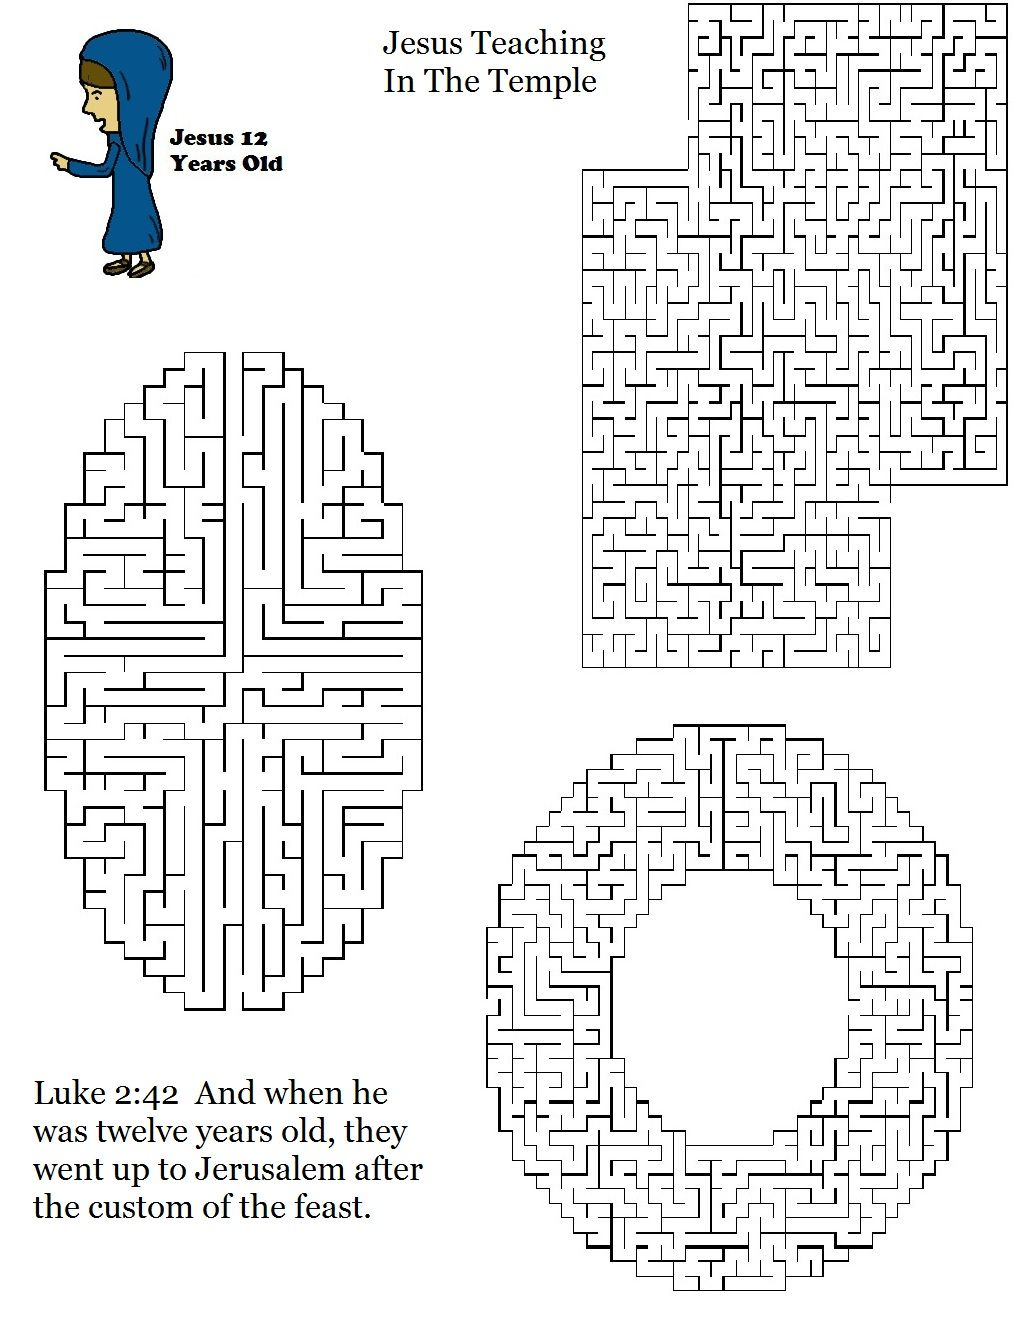 worksheet Jesus In The Temple Worksheet church house collection blog boy jesus teaching in temple maze maze